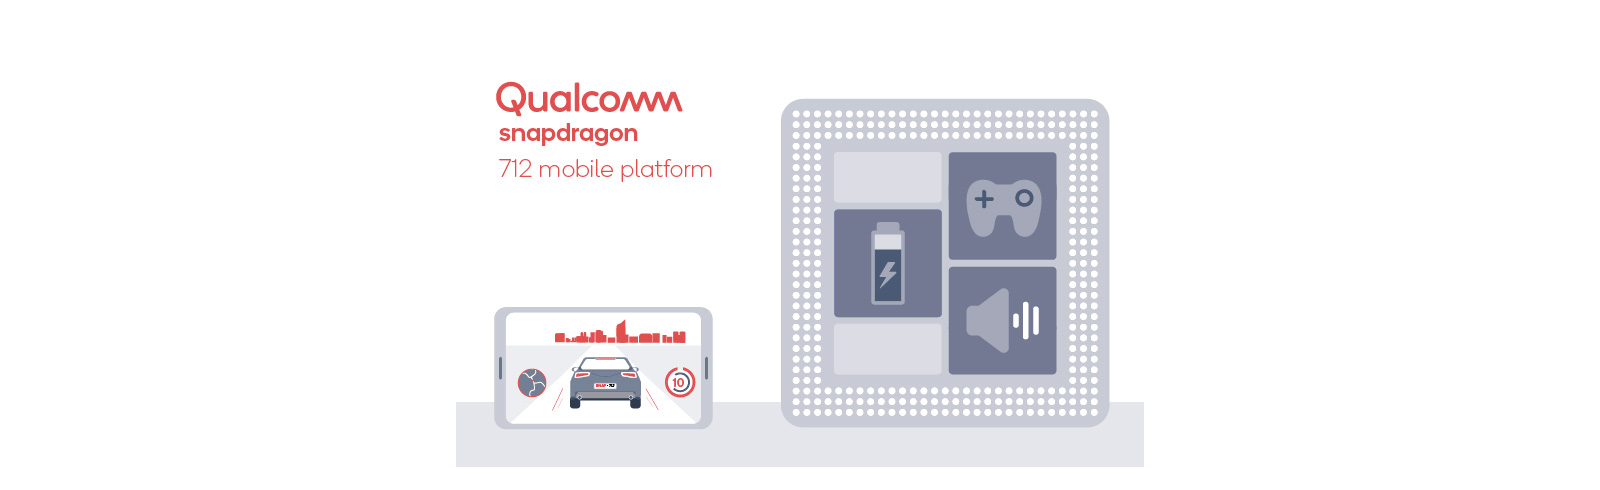 Qualcomm unveils the Snapdragon 712 with a 10% improved performance over the Snapdragon 710